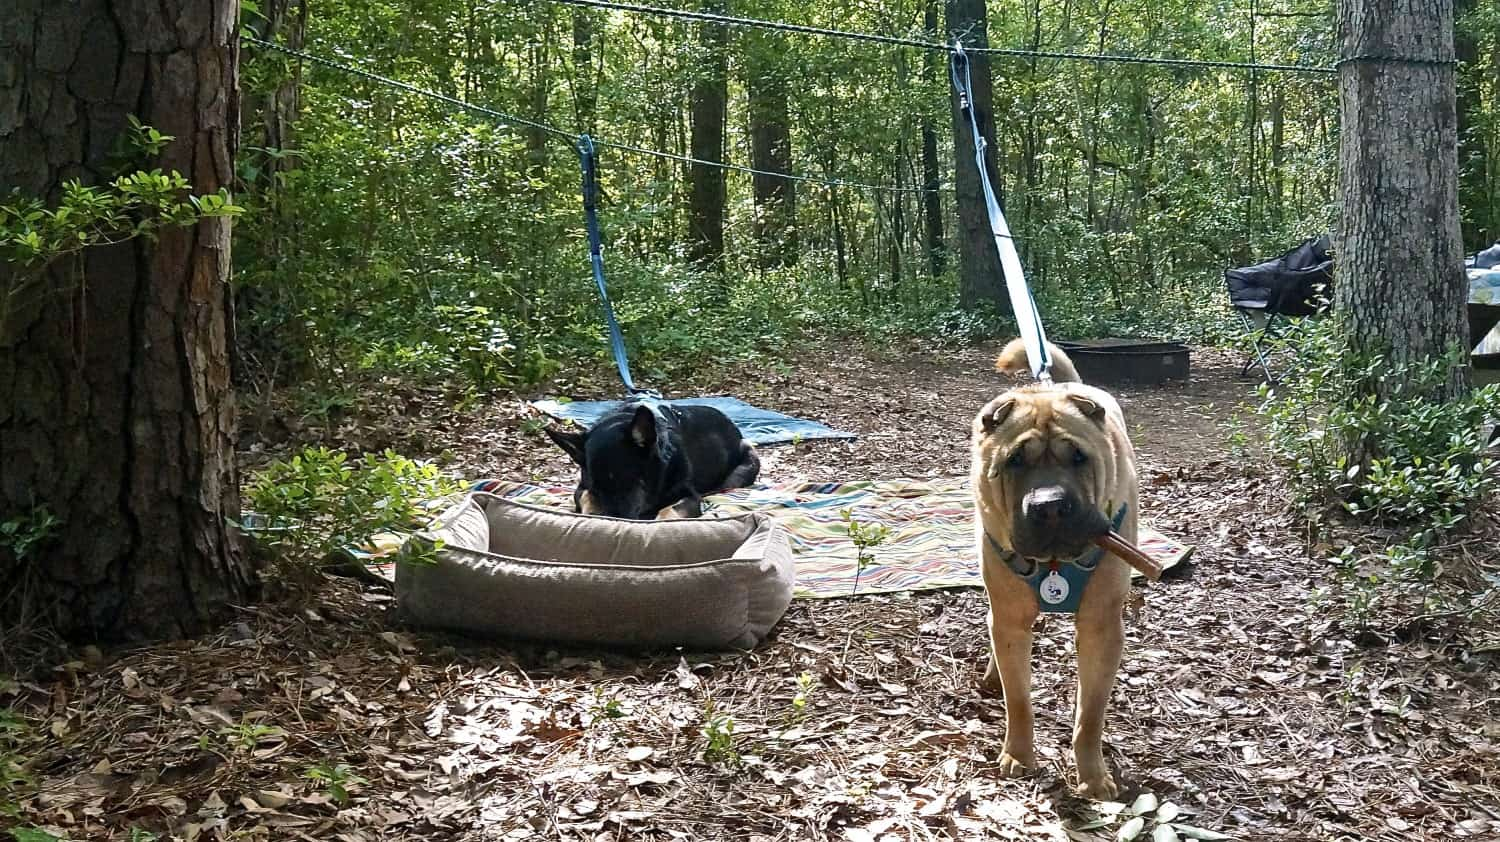 Ty the Shar-pei and Buster the German Shepherd from GoPetFriendly.com lounging on their zip line in a campsite